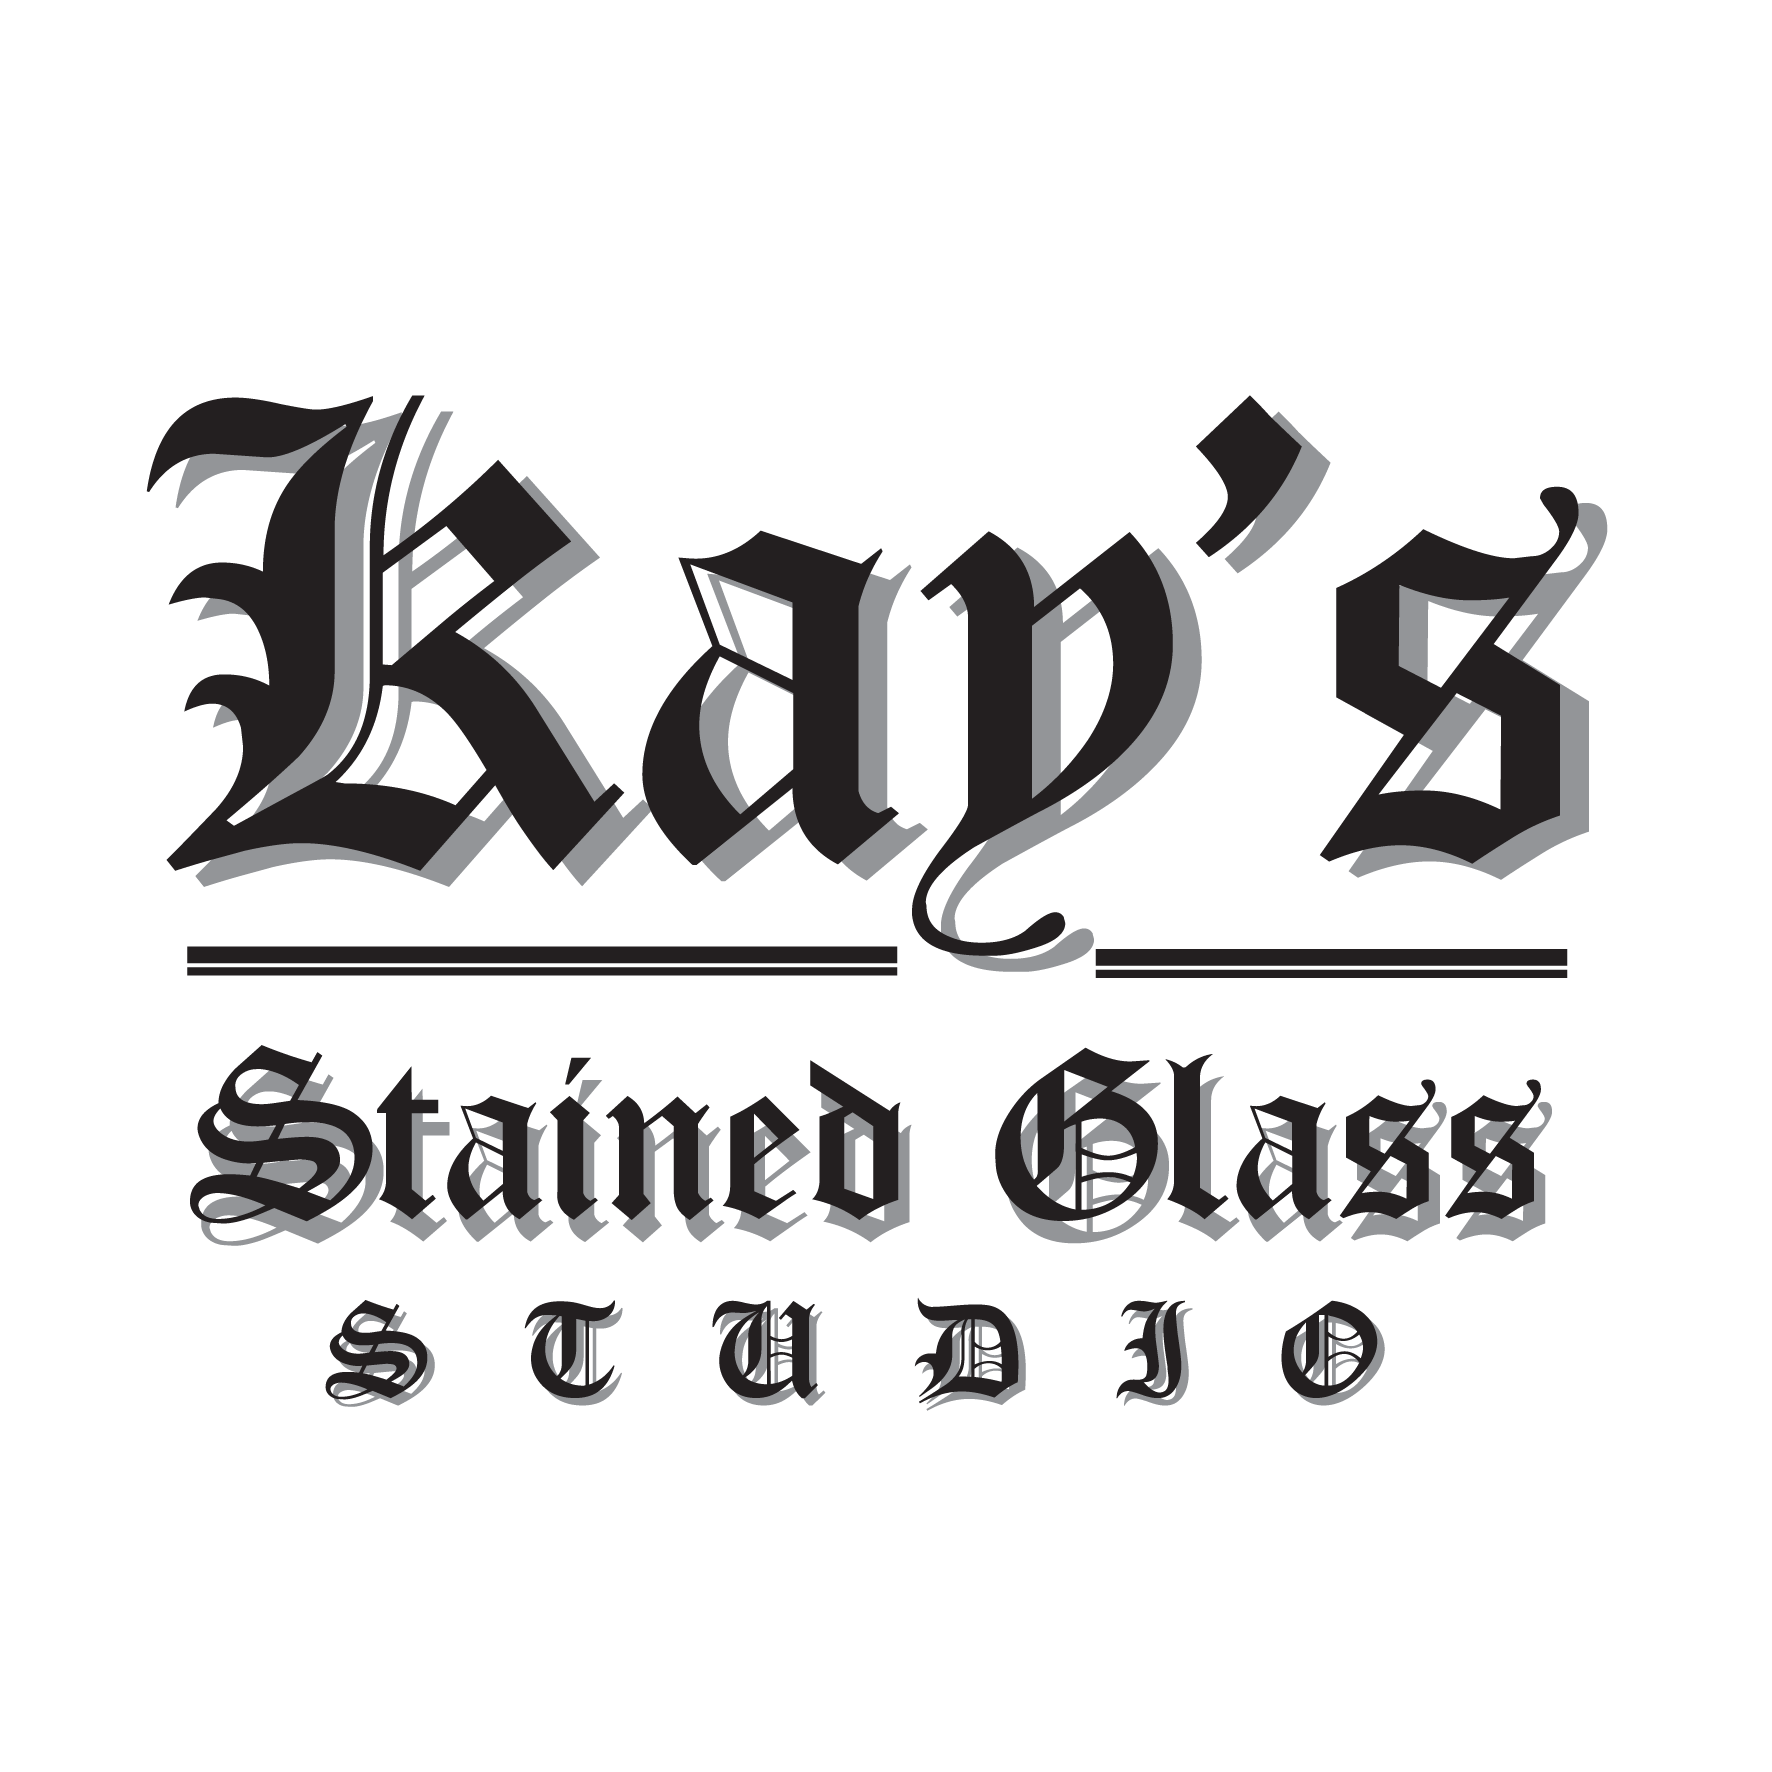 Kay's Stained Glass Studio image 1